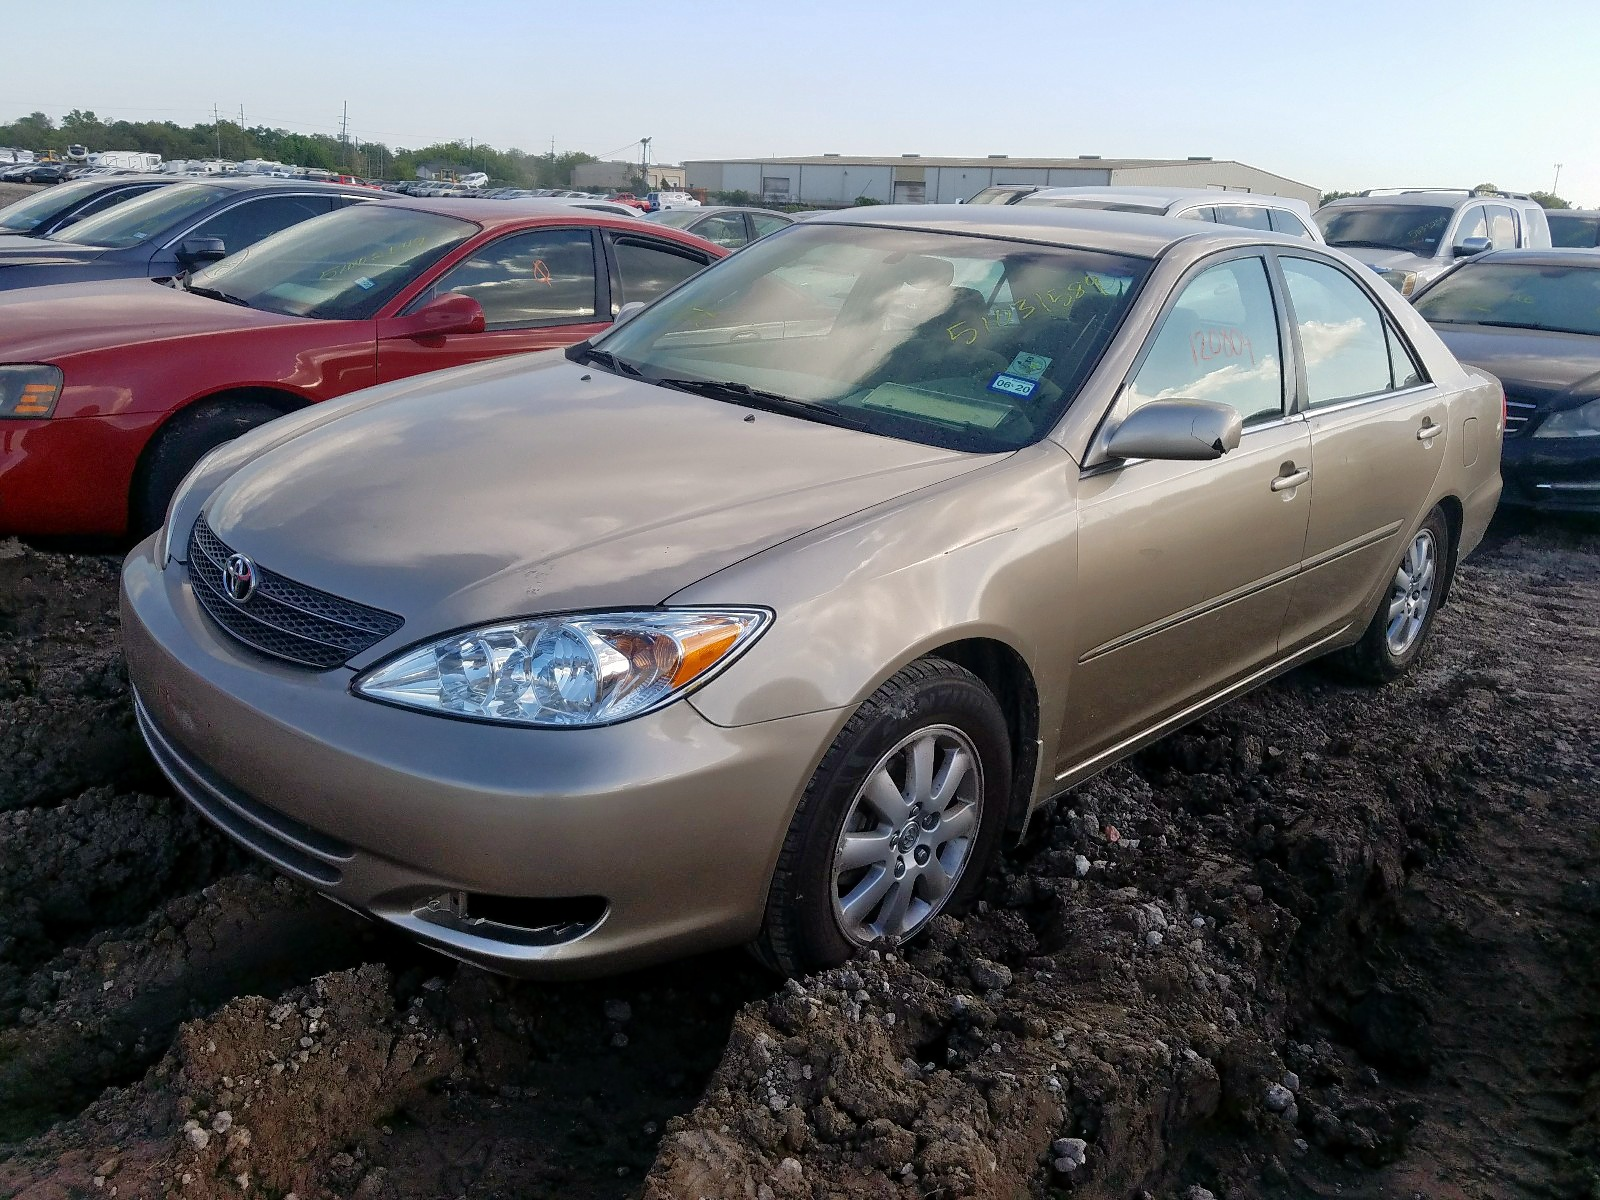 2002 Toyota Camry Le 2.4L Right View